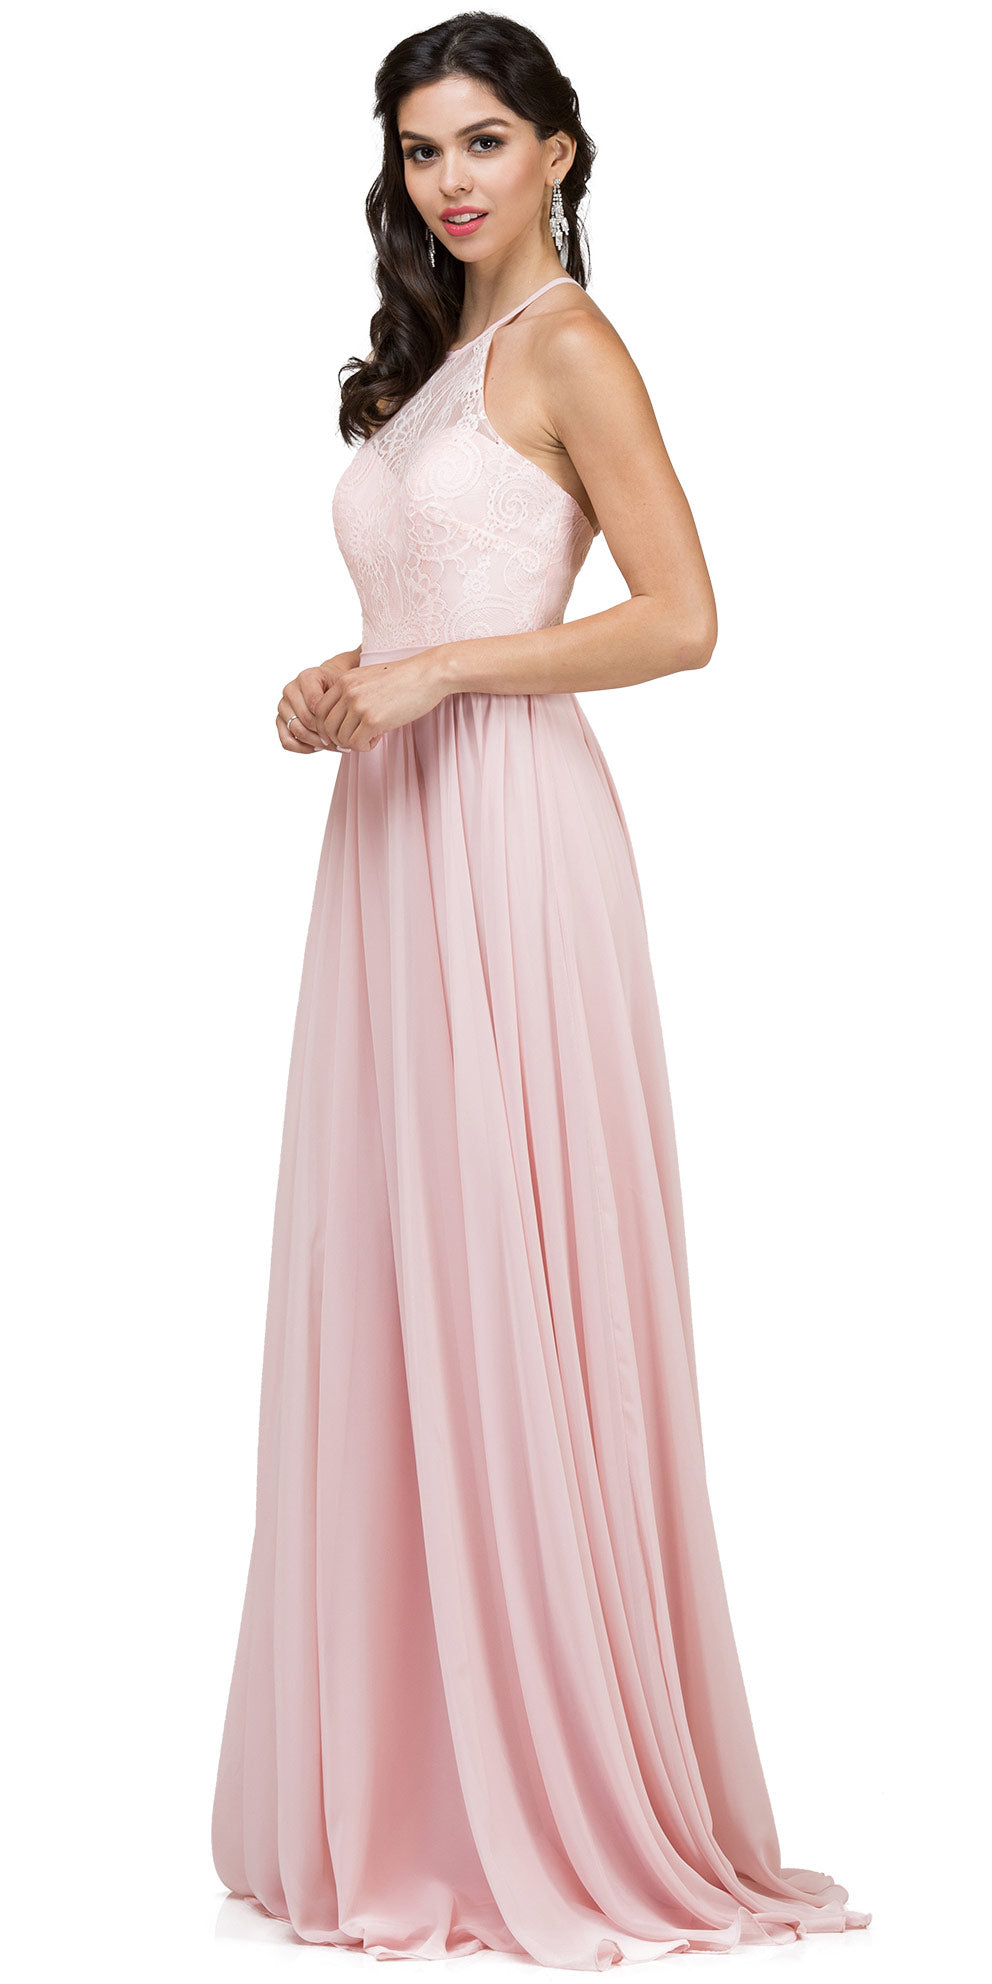 Image of Lace Bodice Criss Cross Back Long Bridesmaid Dress in Blush